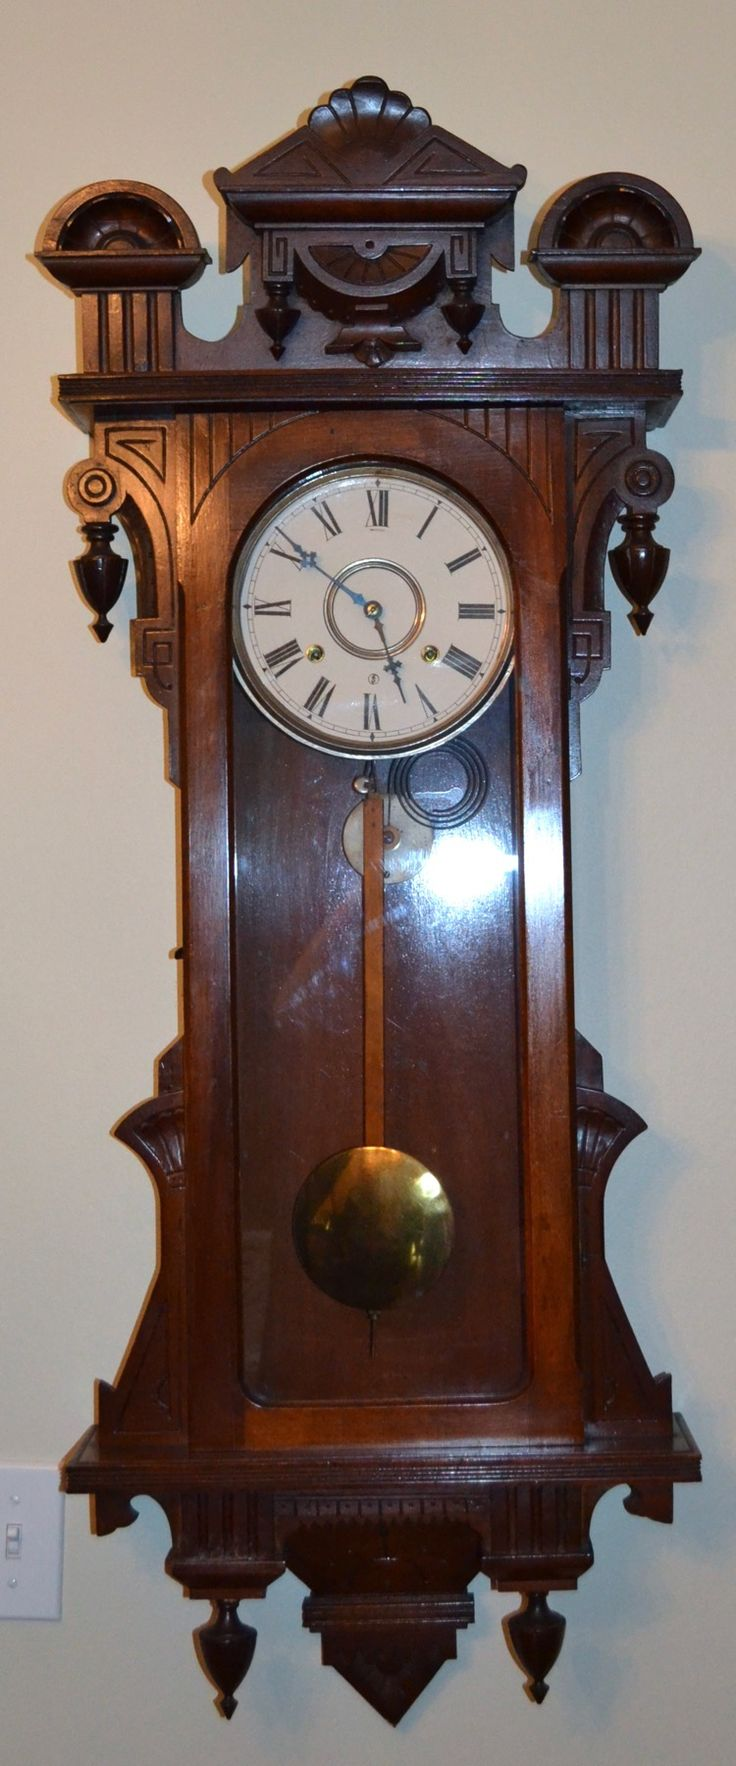 early 20th century american pendulum clock - Feldstein Kaminsimse